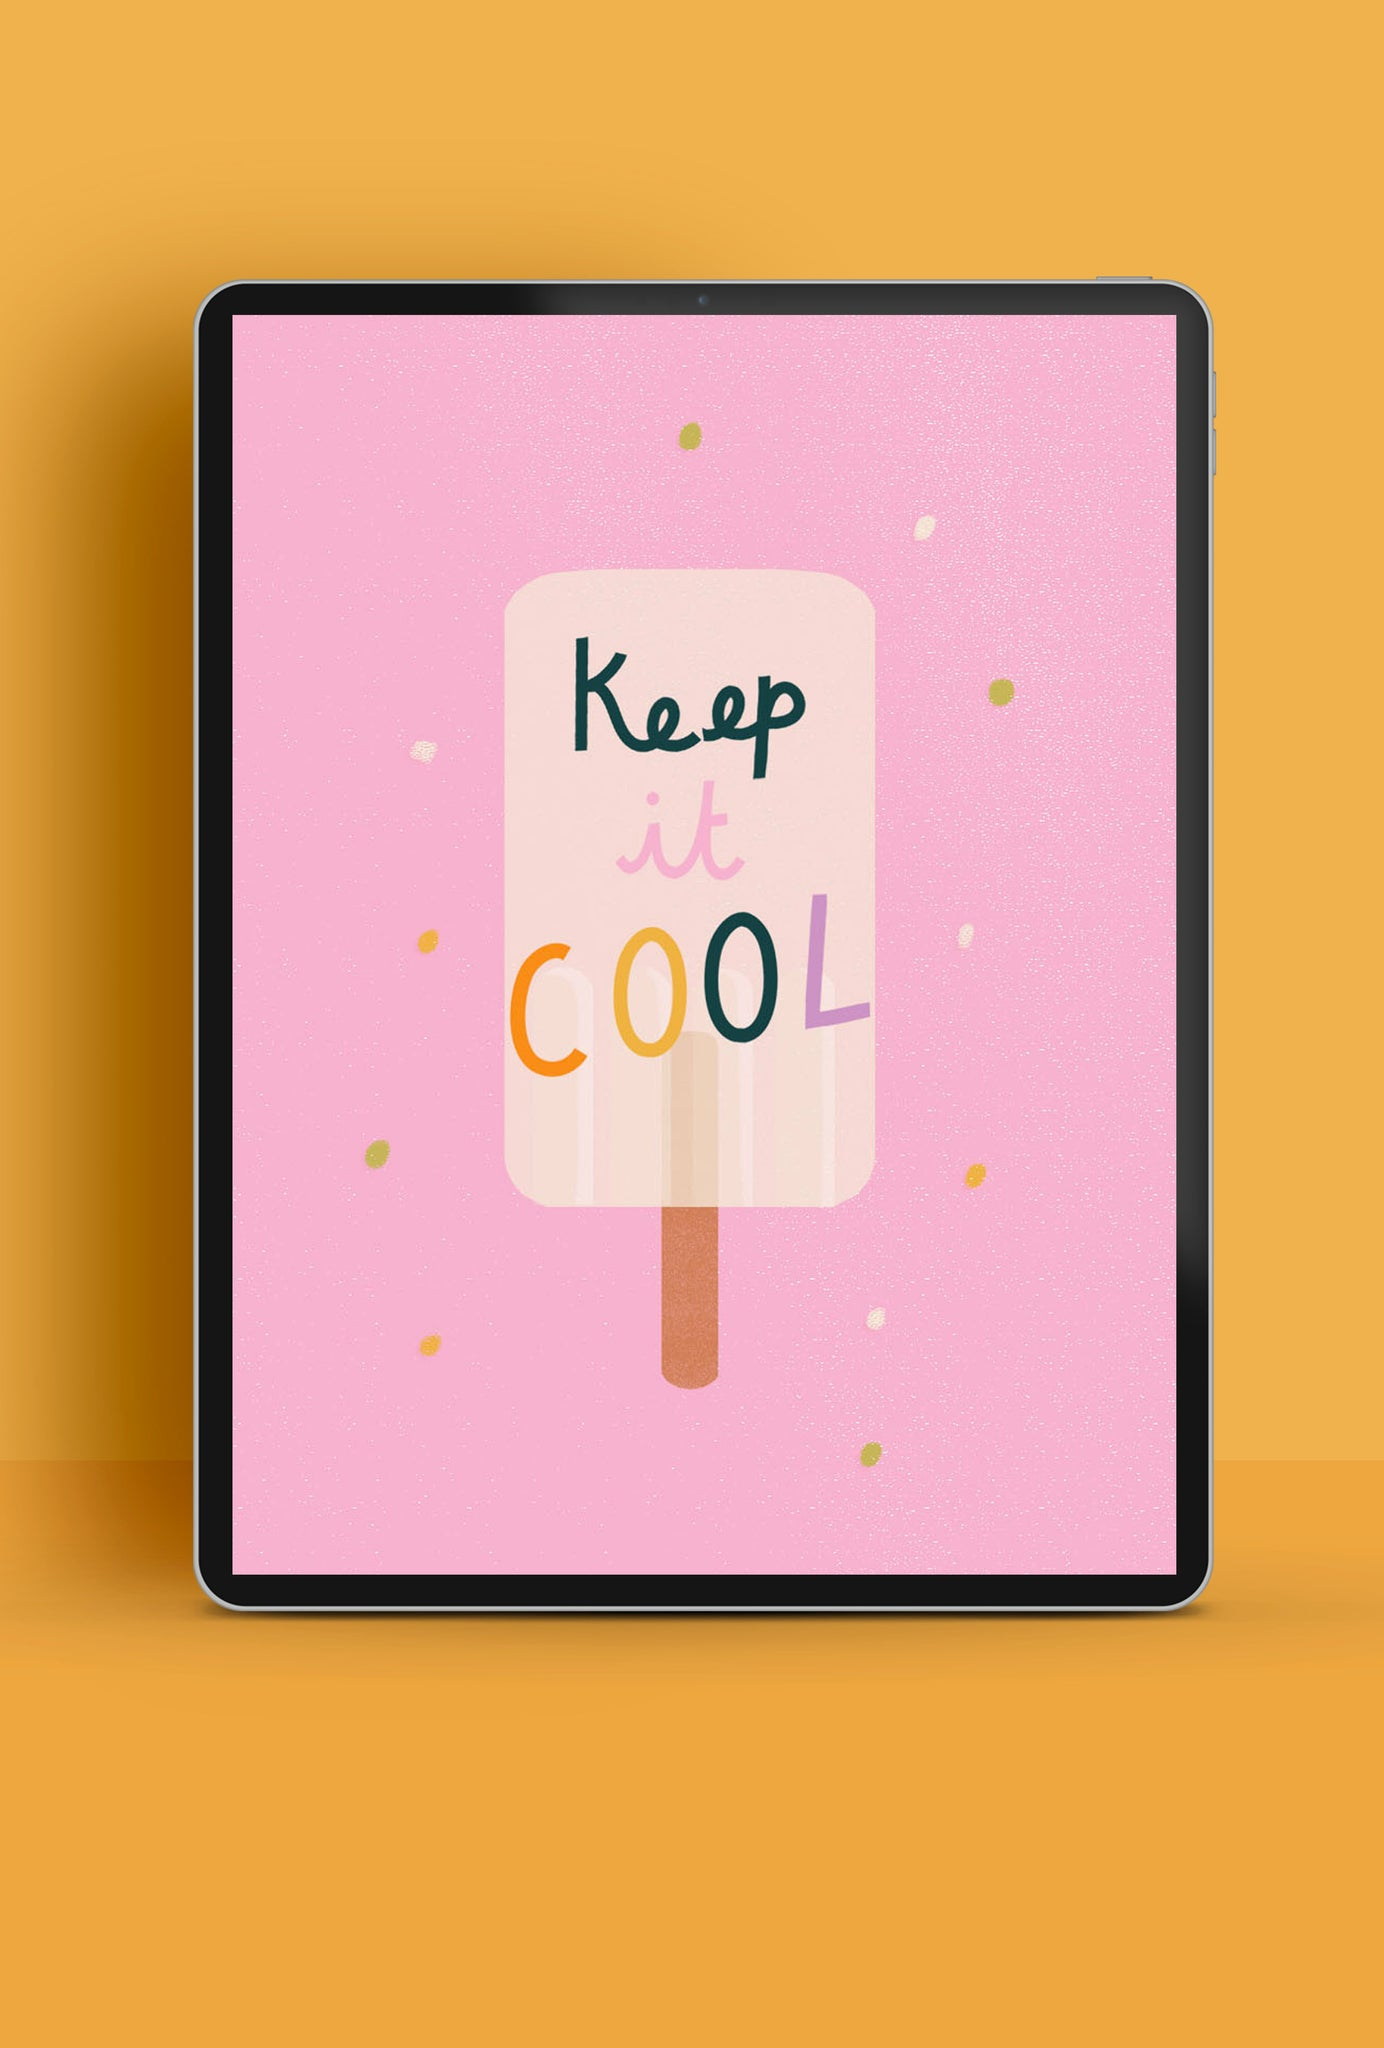 'Keep it cool' fun ice lolly tablet wallpaper | Raspberry Blossom